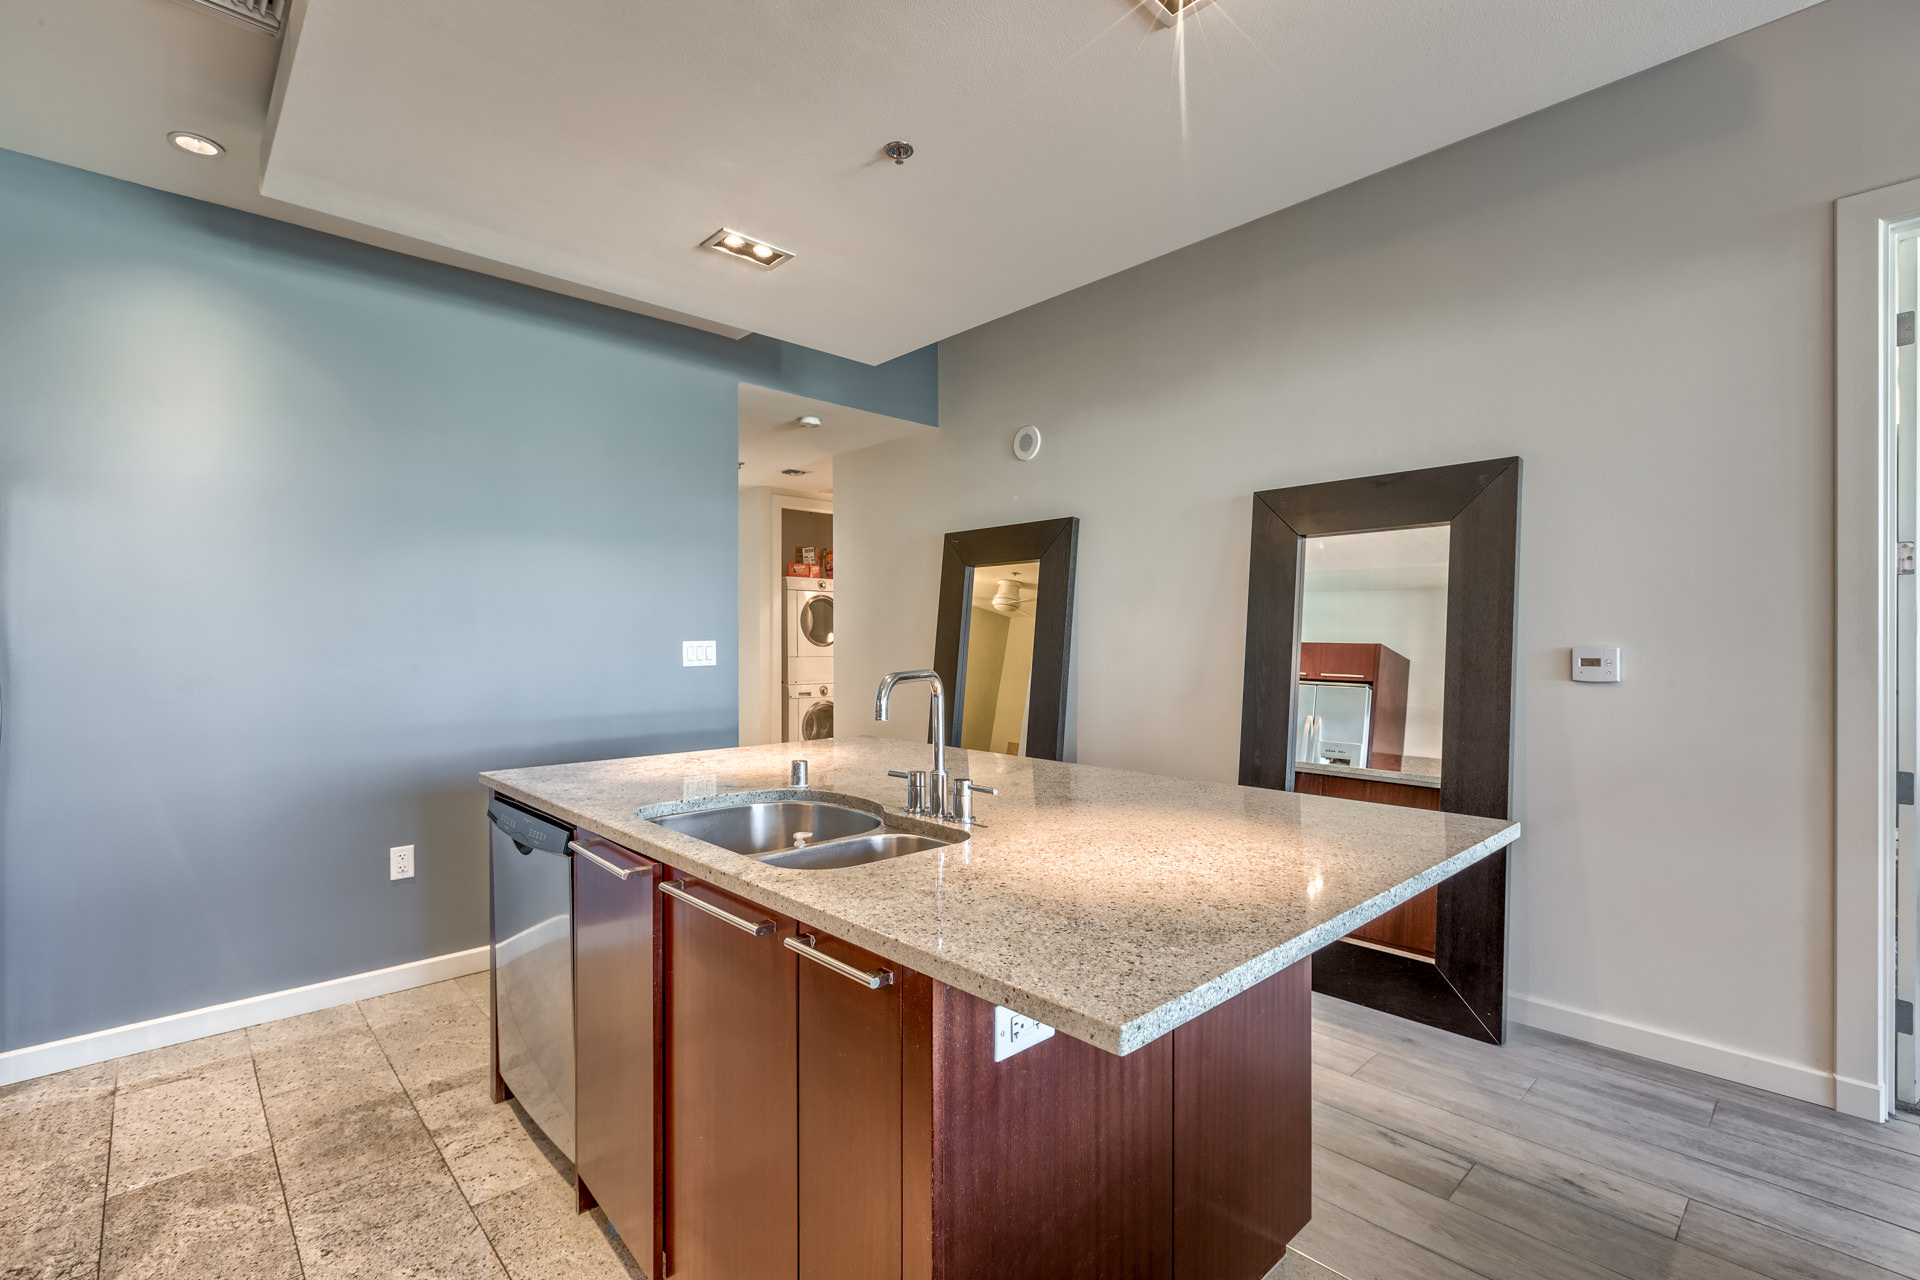 Cheap rooms for rent in san jose ca cheap rooms for rent for Cheap kitchen cabinets in las vegas